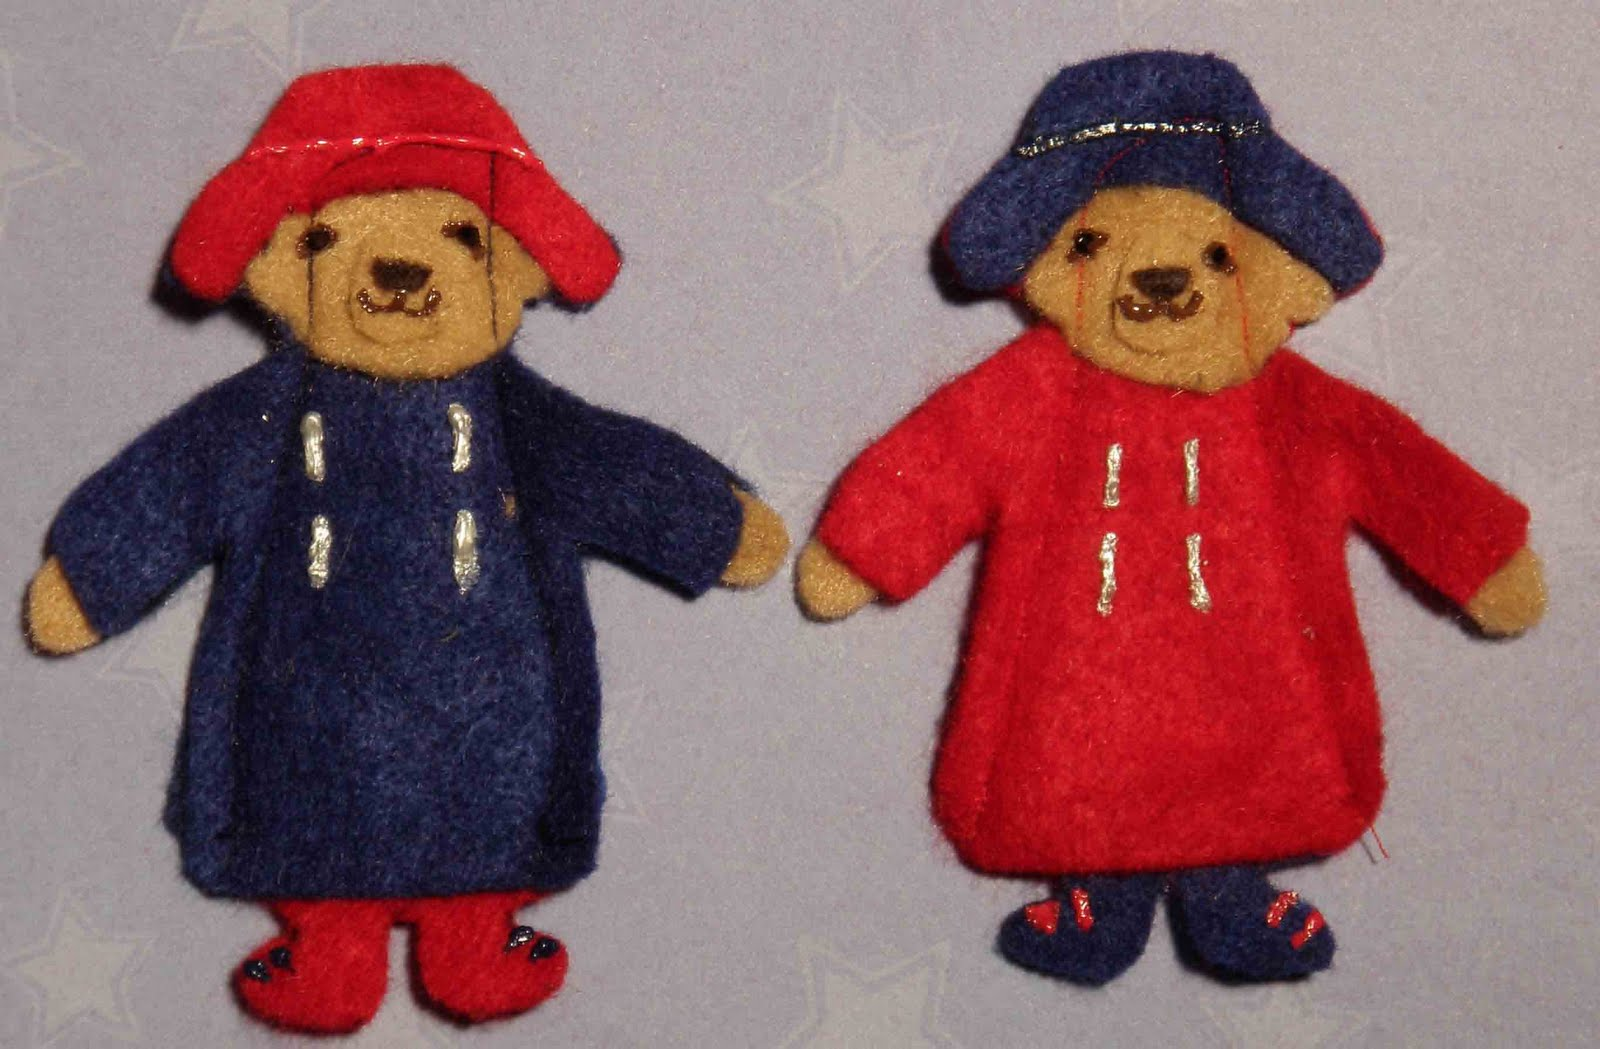 crack of dawn crafts  paddington bear felt finger puppet